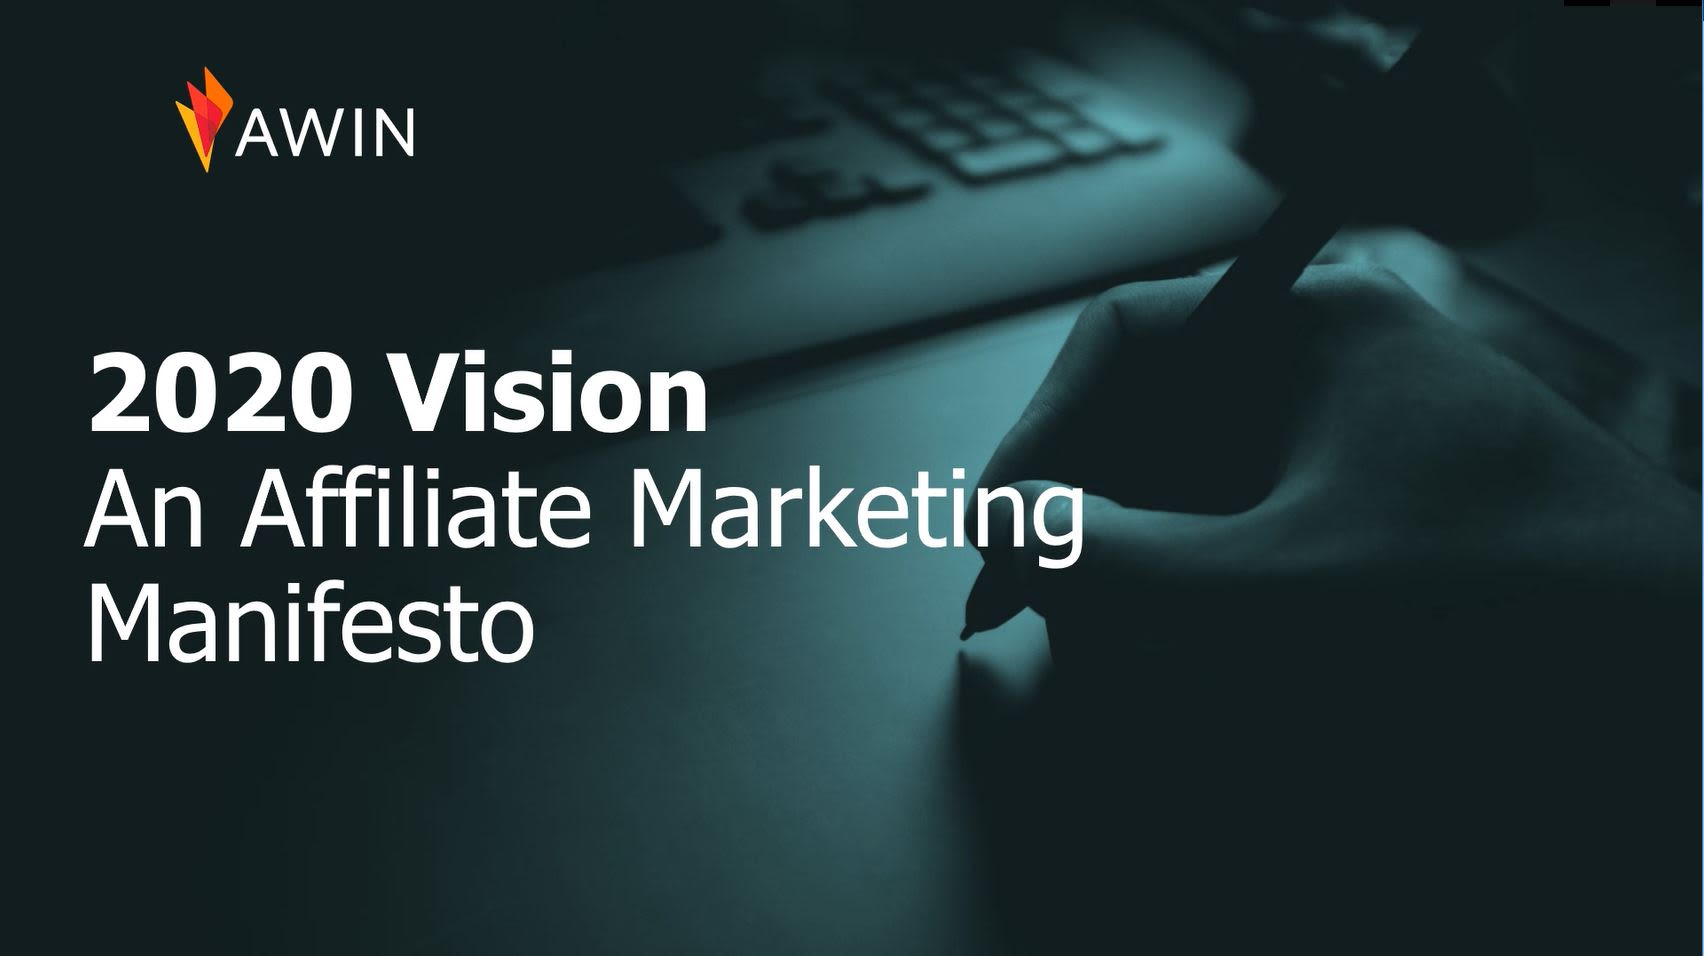 2020 vision an affiliate marketing manifesto